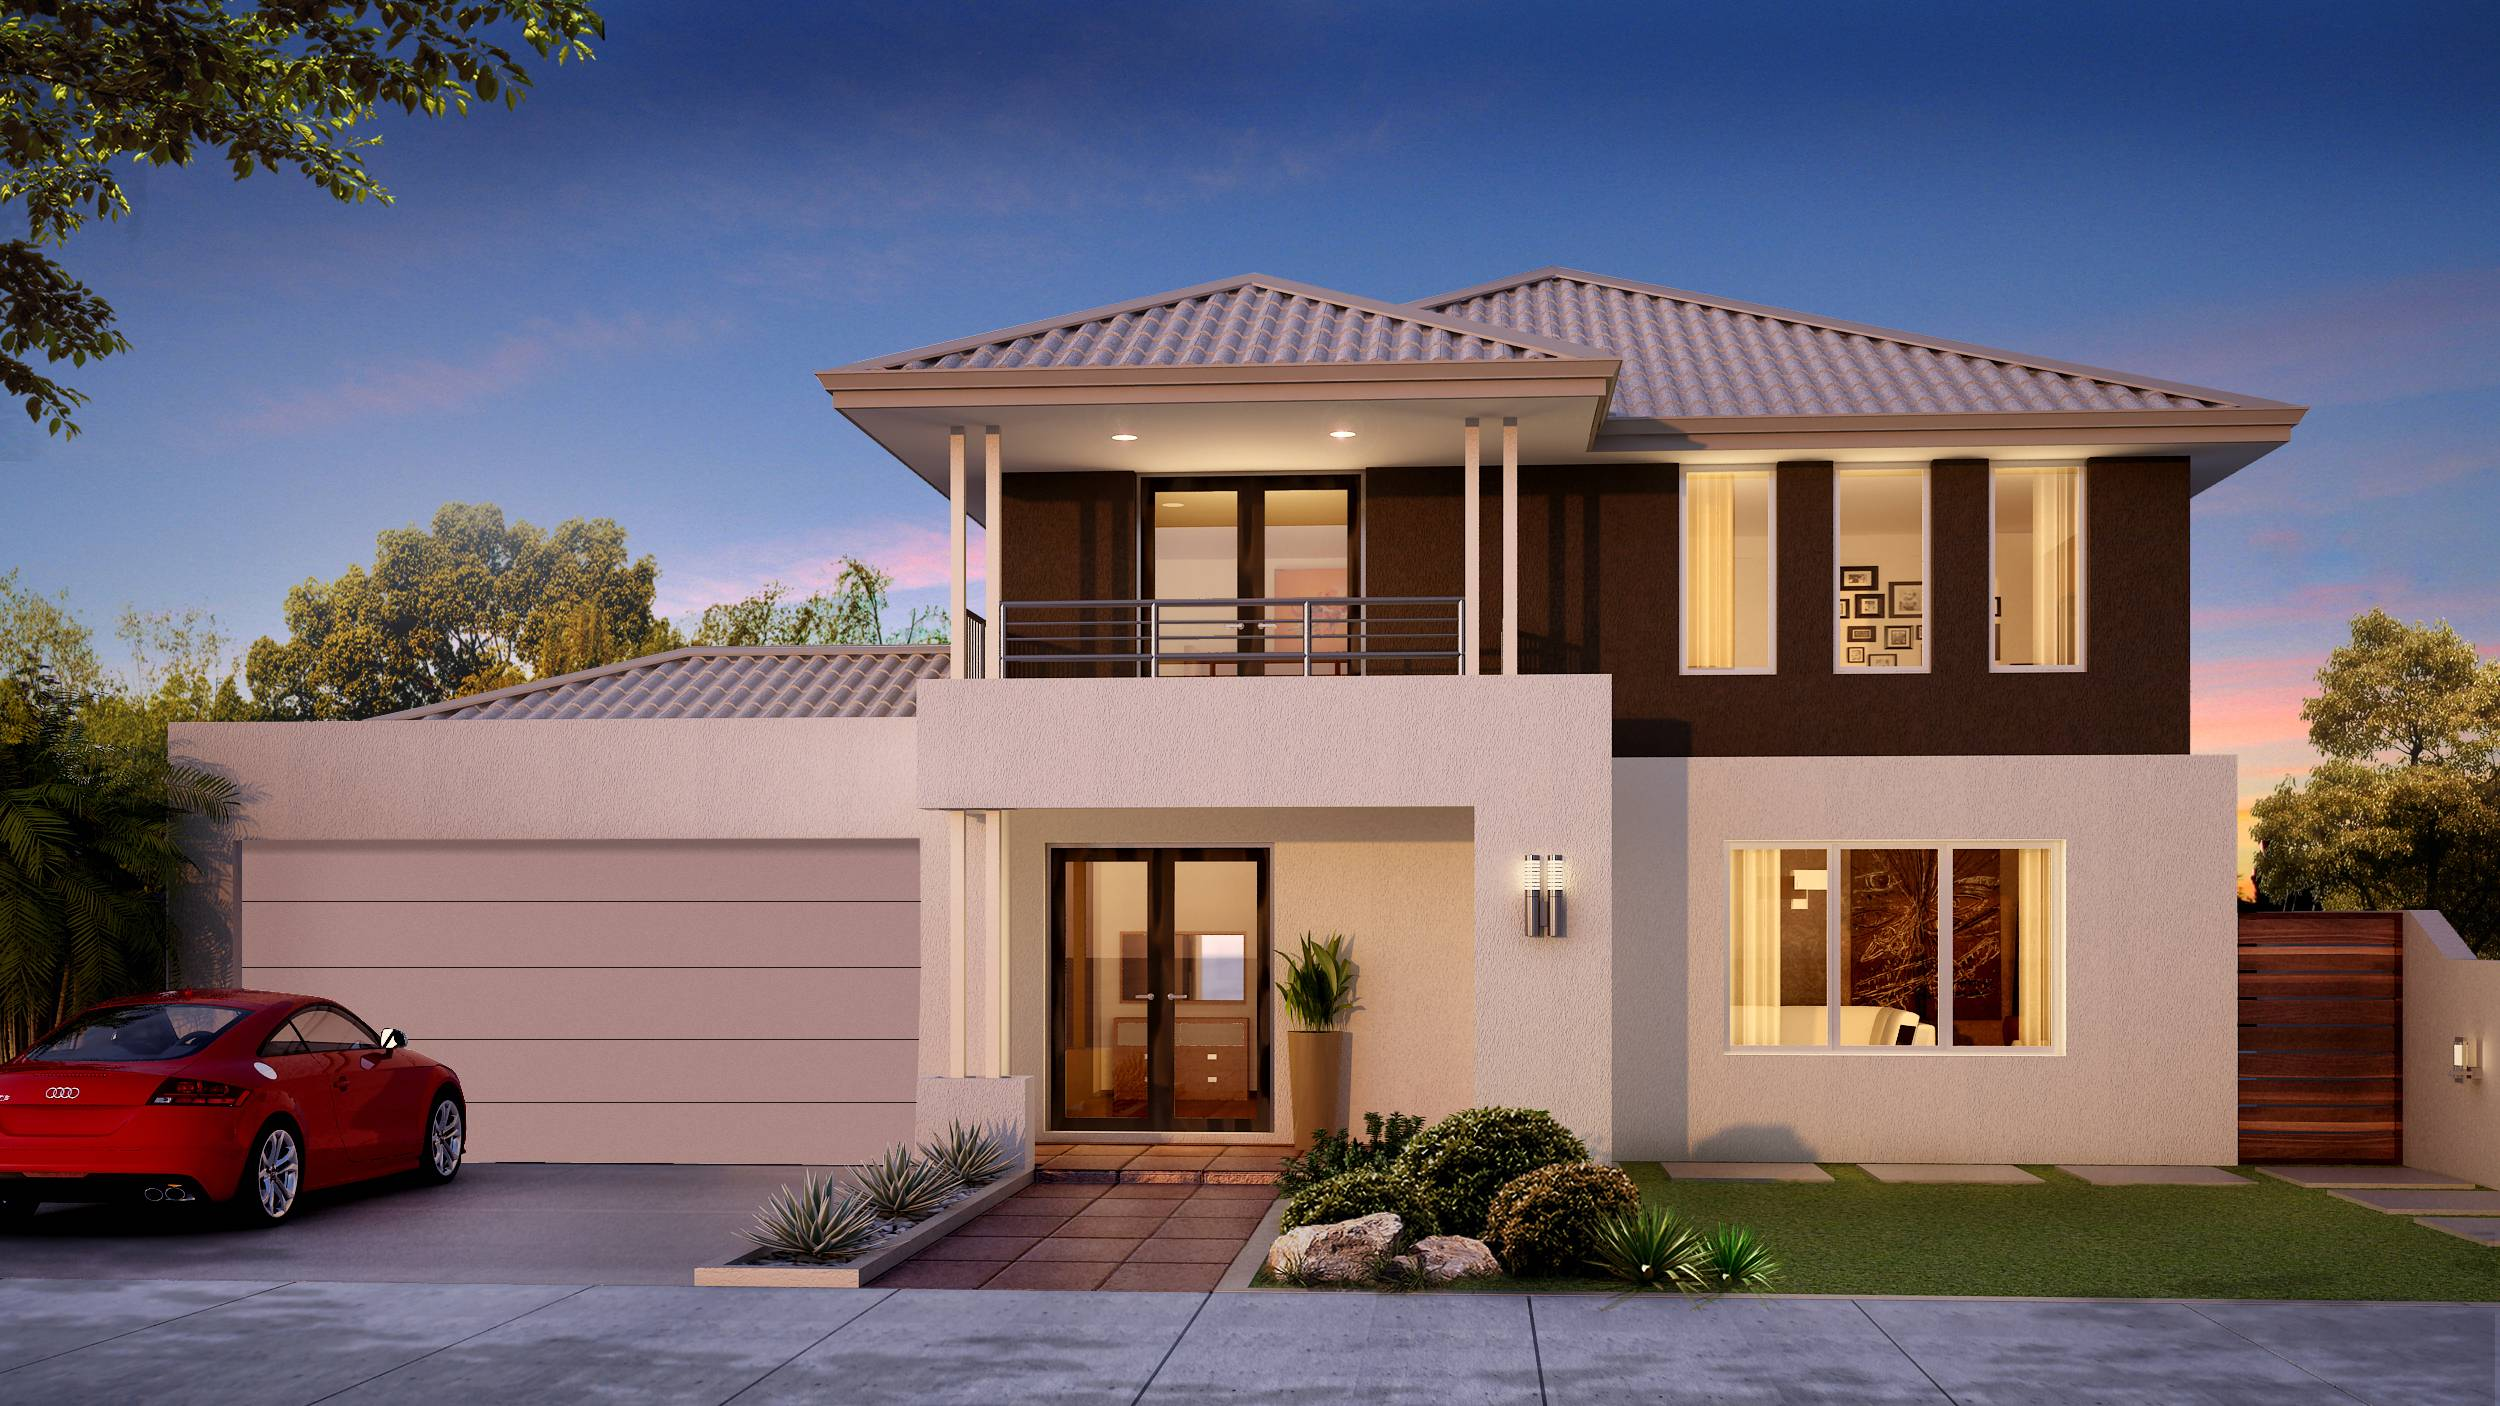 House Plans Design Modern Double StoreyHome Building Plans72434. Modern house plans double story